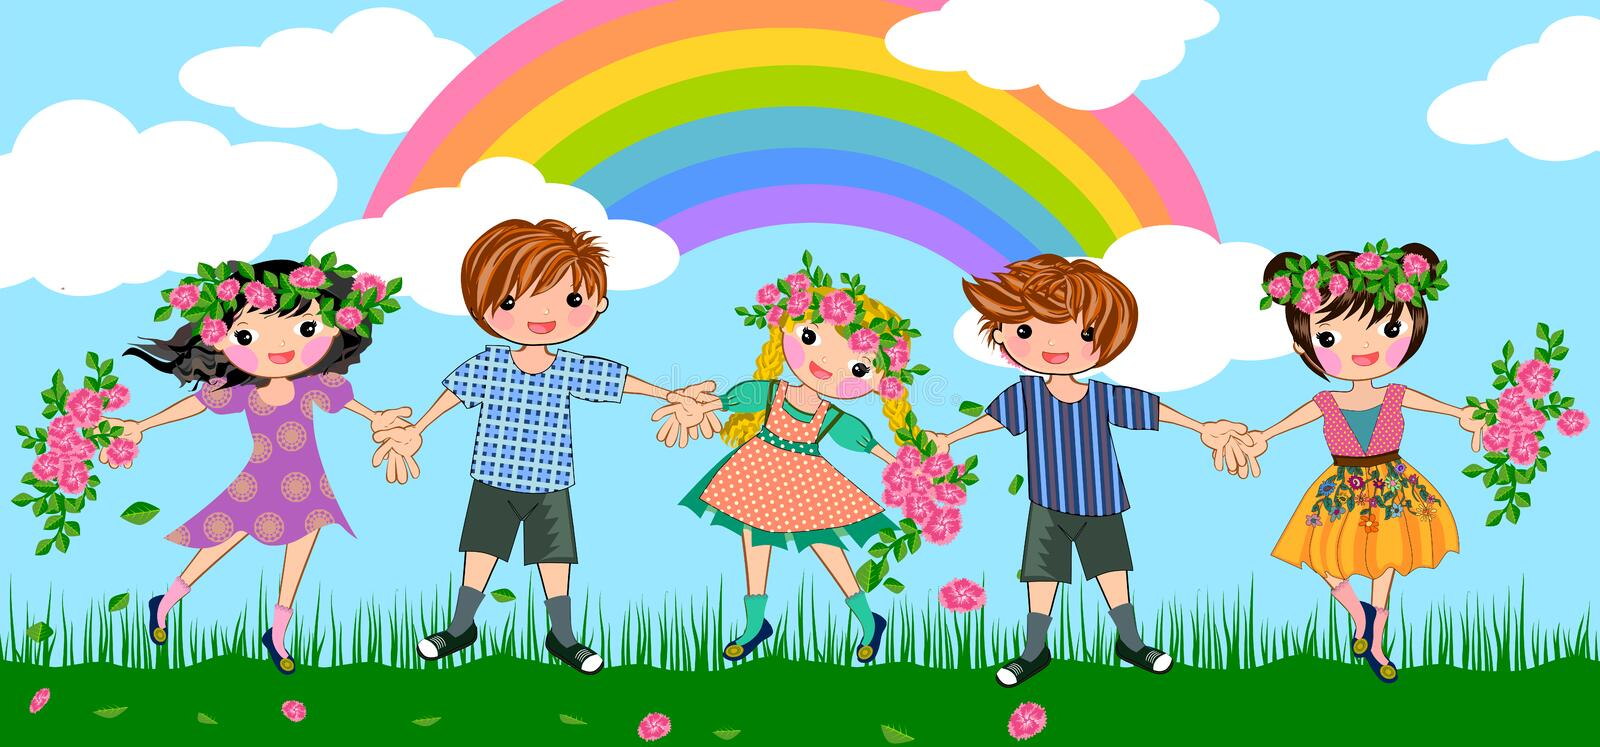 Peace and joy. Little children in their happy face illustrations concept